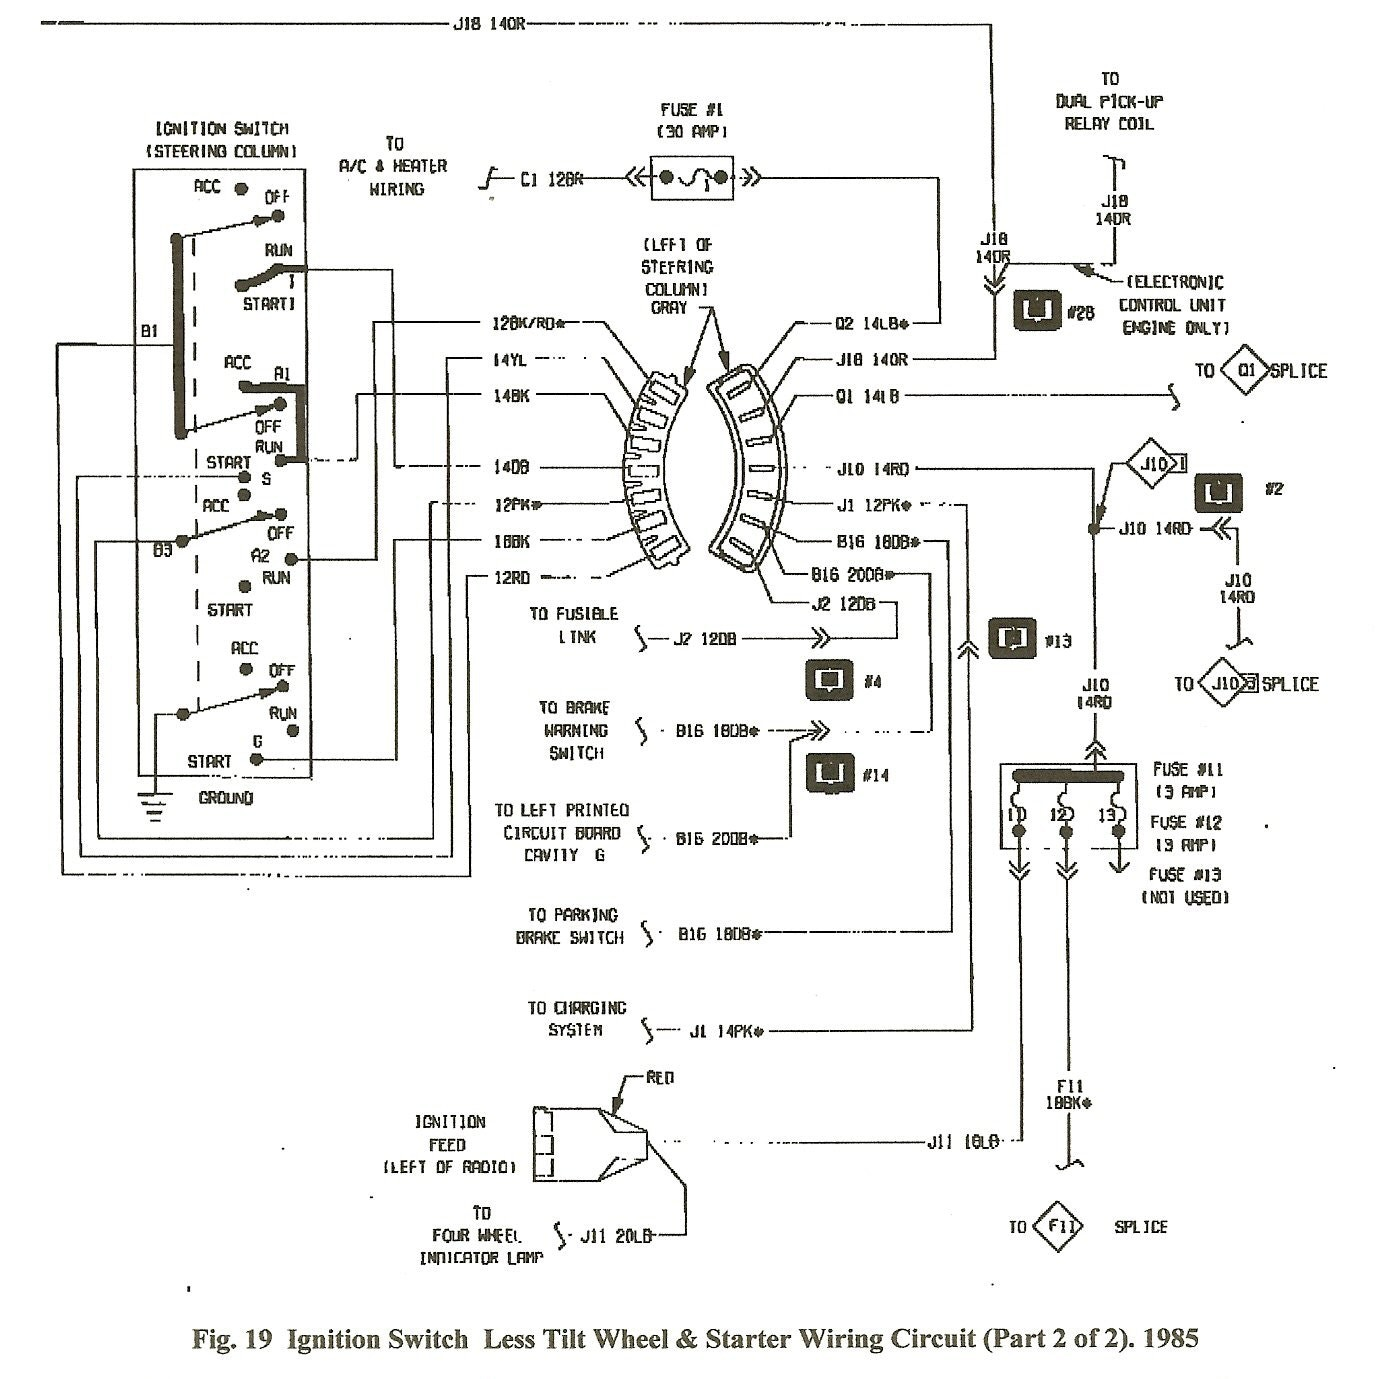 Dodge Ramcharger Wiring Harness - Wiring Diagram Online on 1984 ford thunderbird wiring harness, 2004 dodge dakota wiring harness, 1984 mercury cougar wiring harness, 1987 dodge raider wiring harness, 1984 dodge pickup wiring harness, 1984 dodge d150 wiring harness, 1984 ford ranger wiring harness,